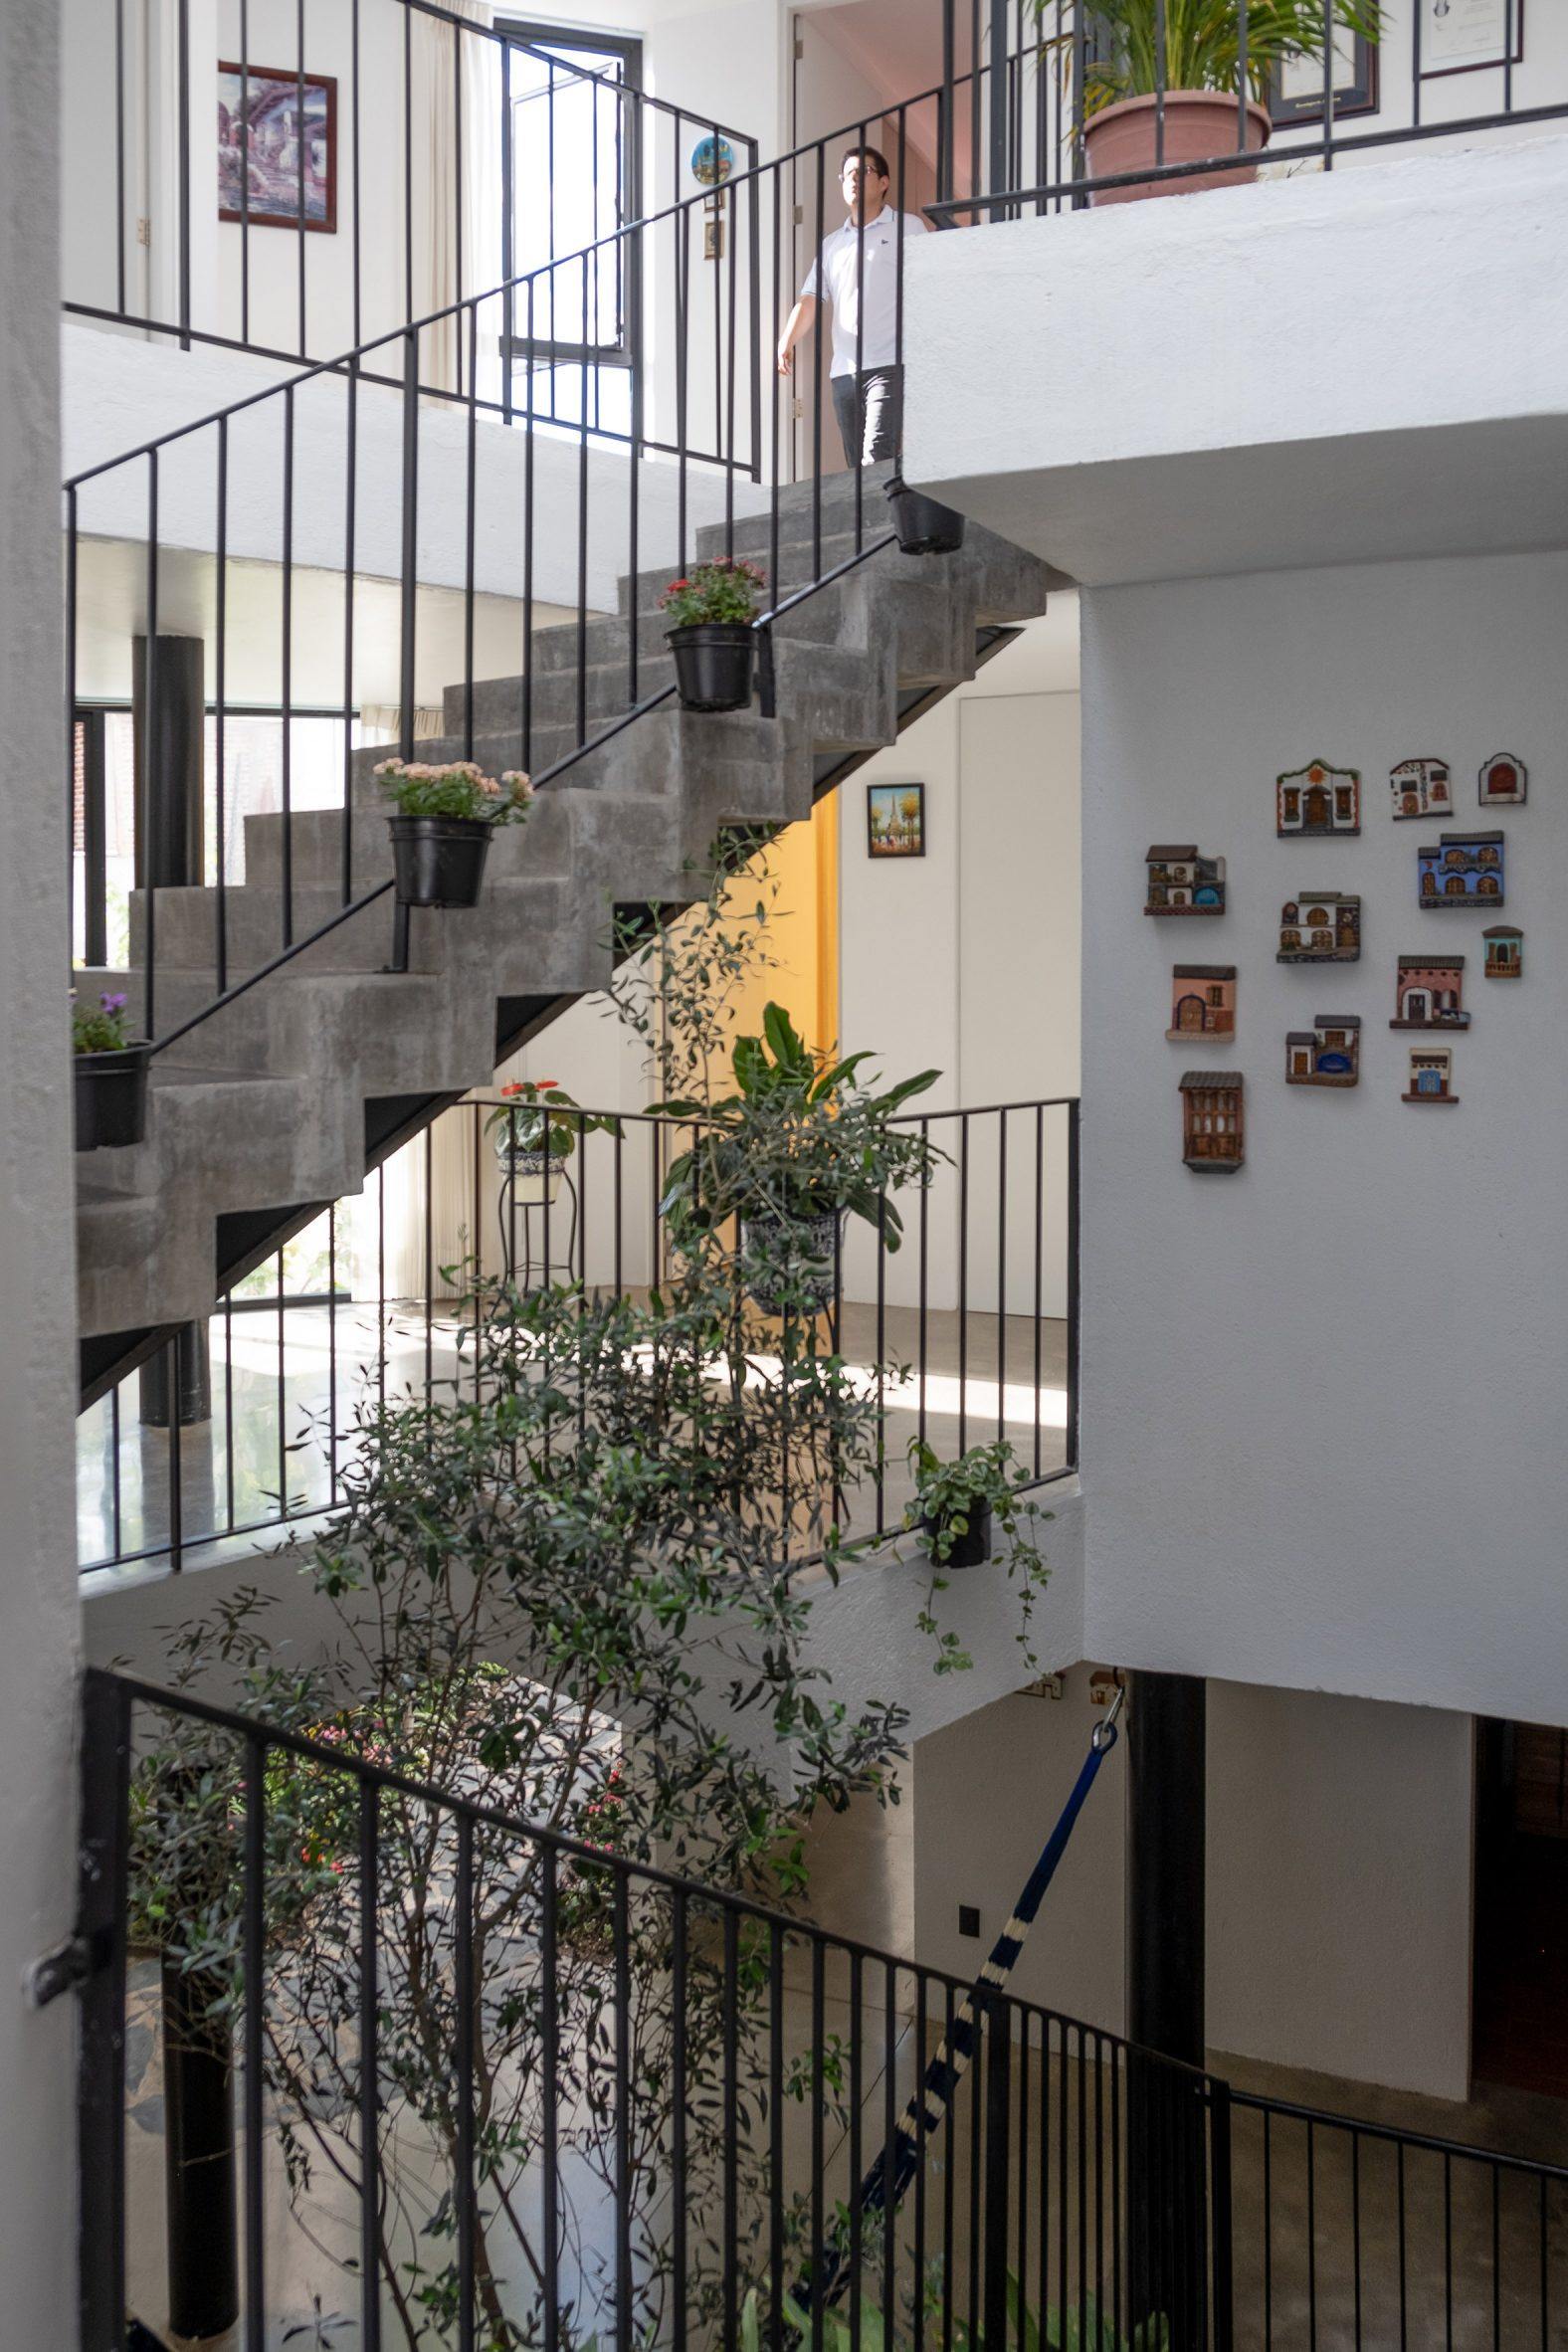 The staircase within Frame House